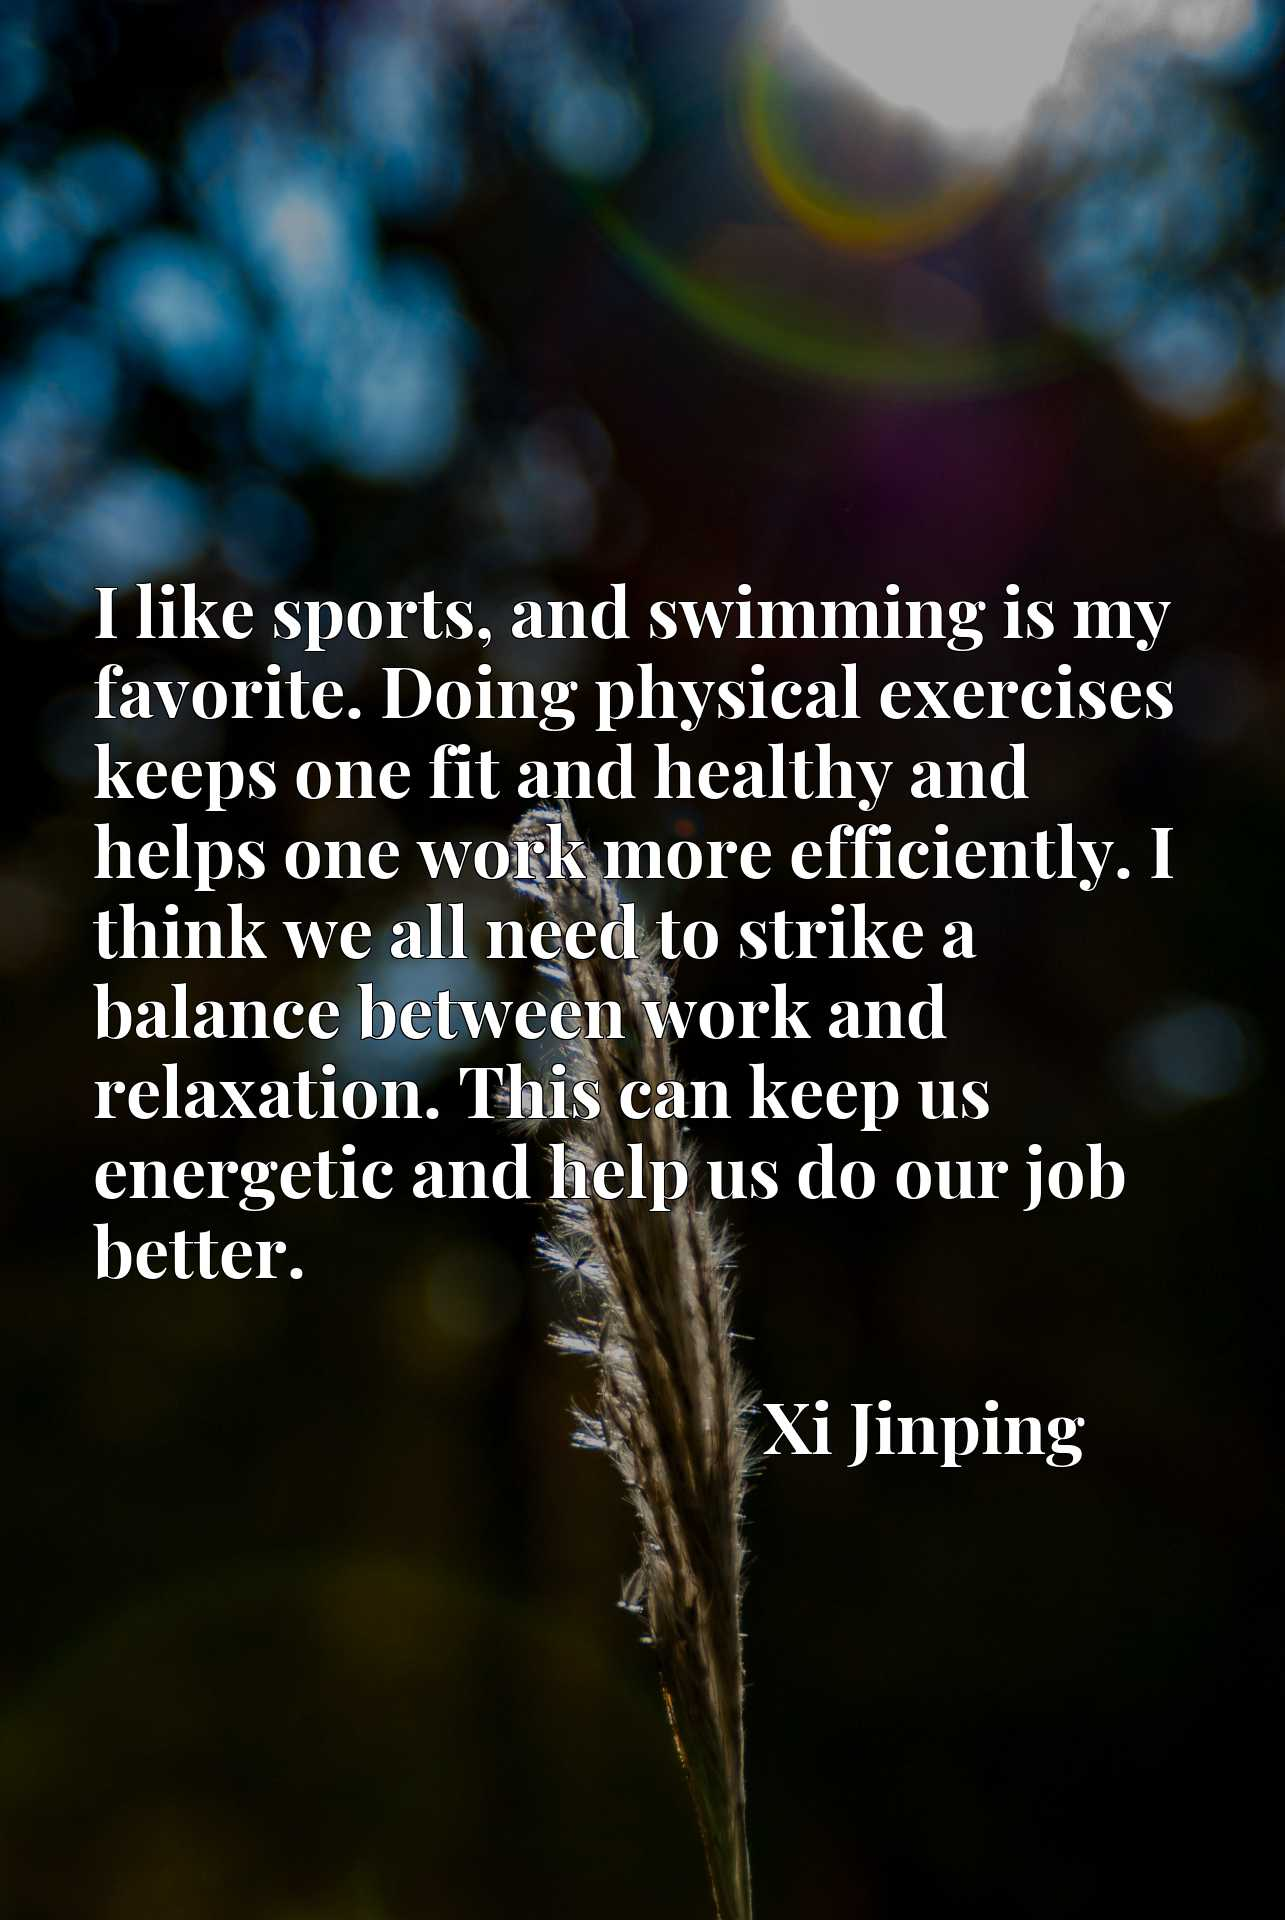 I like sports, and swimming is my favorite. Doing physical exercises keeps one fit and healthy and helps one work more efficiently. I think we all need to strike a balance between work and relaxation. This can keep us energetic and help us do our job better.